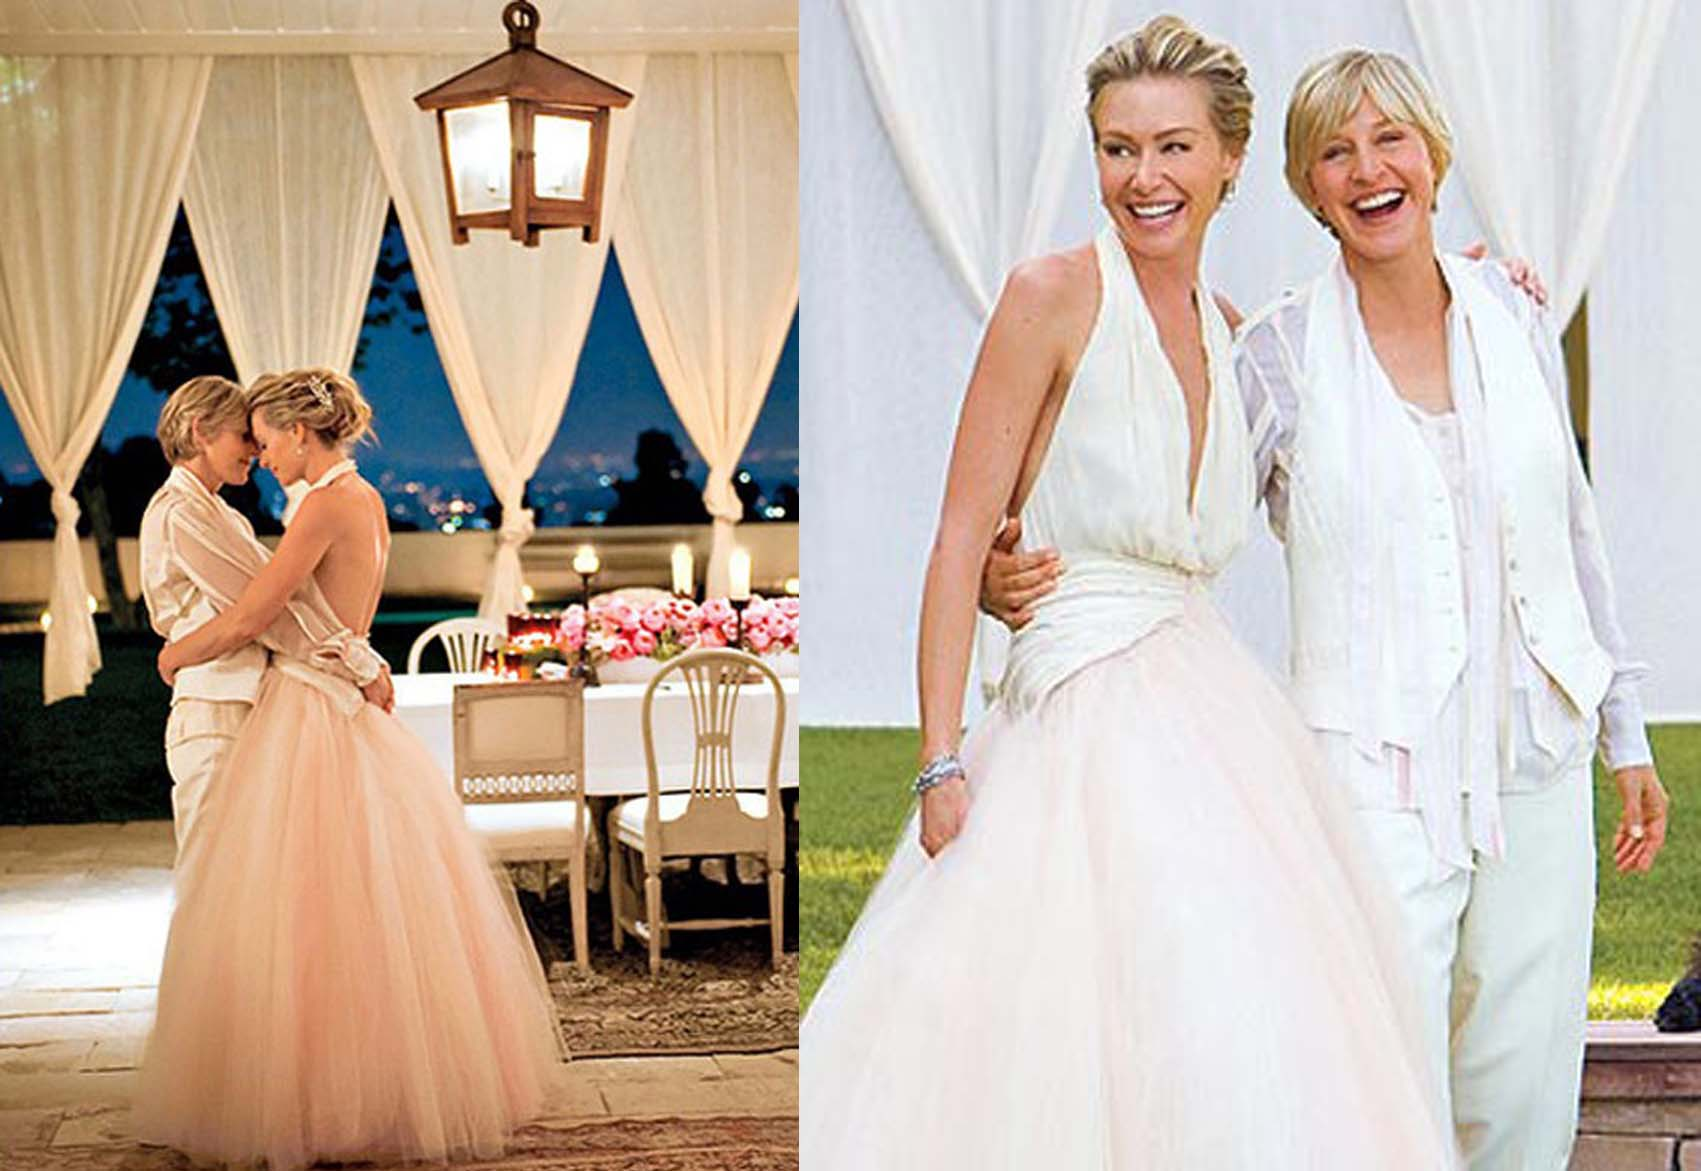 5 Celebrity Lesbian Couples Whose Relationships We Admire